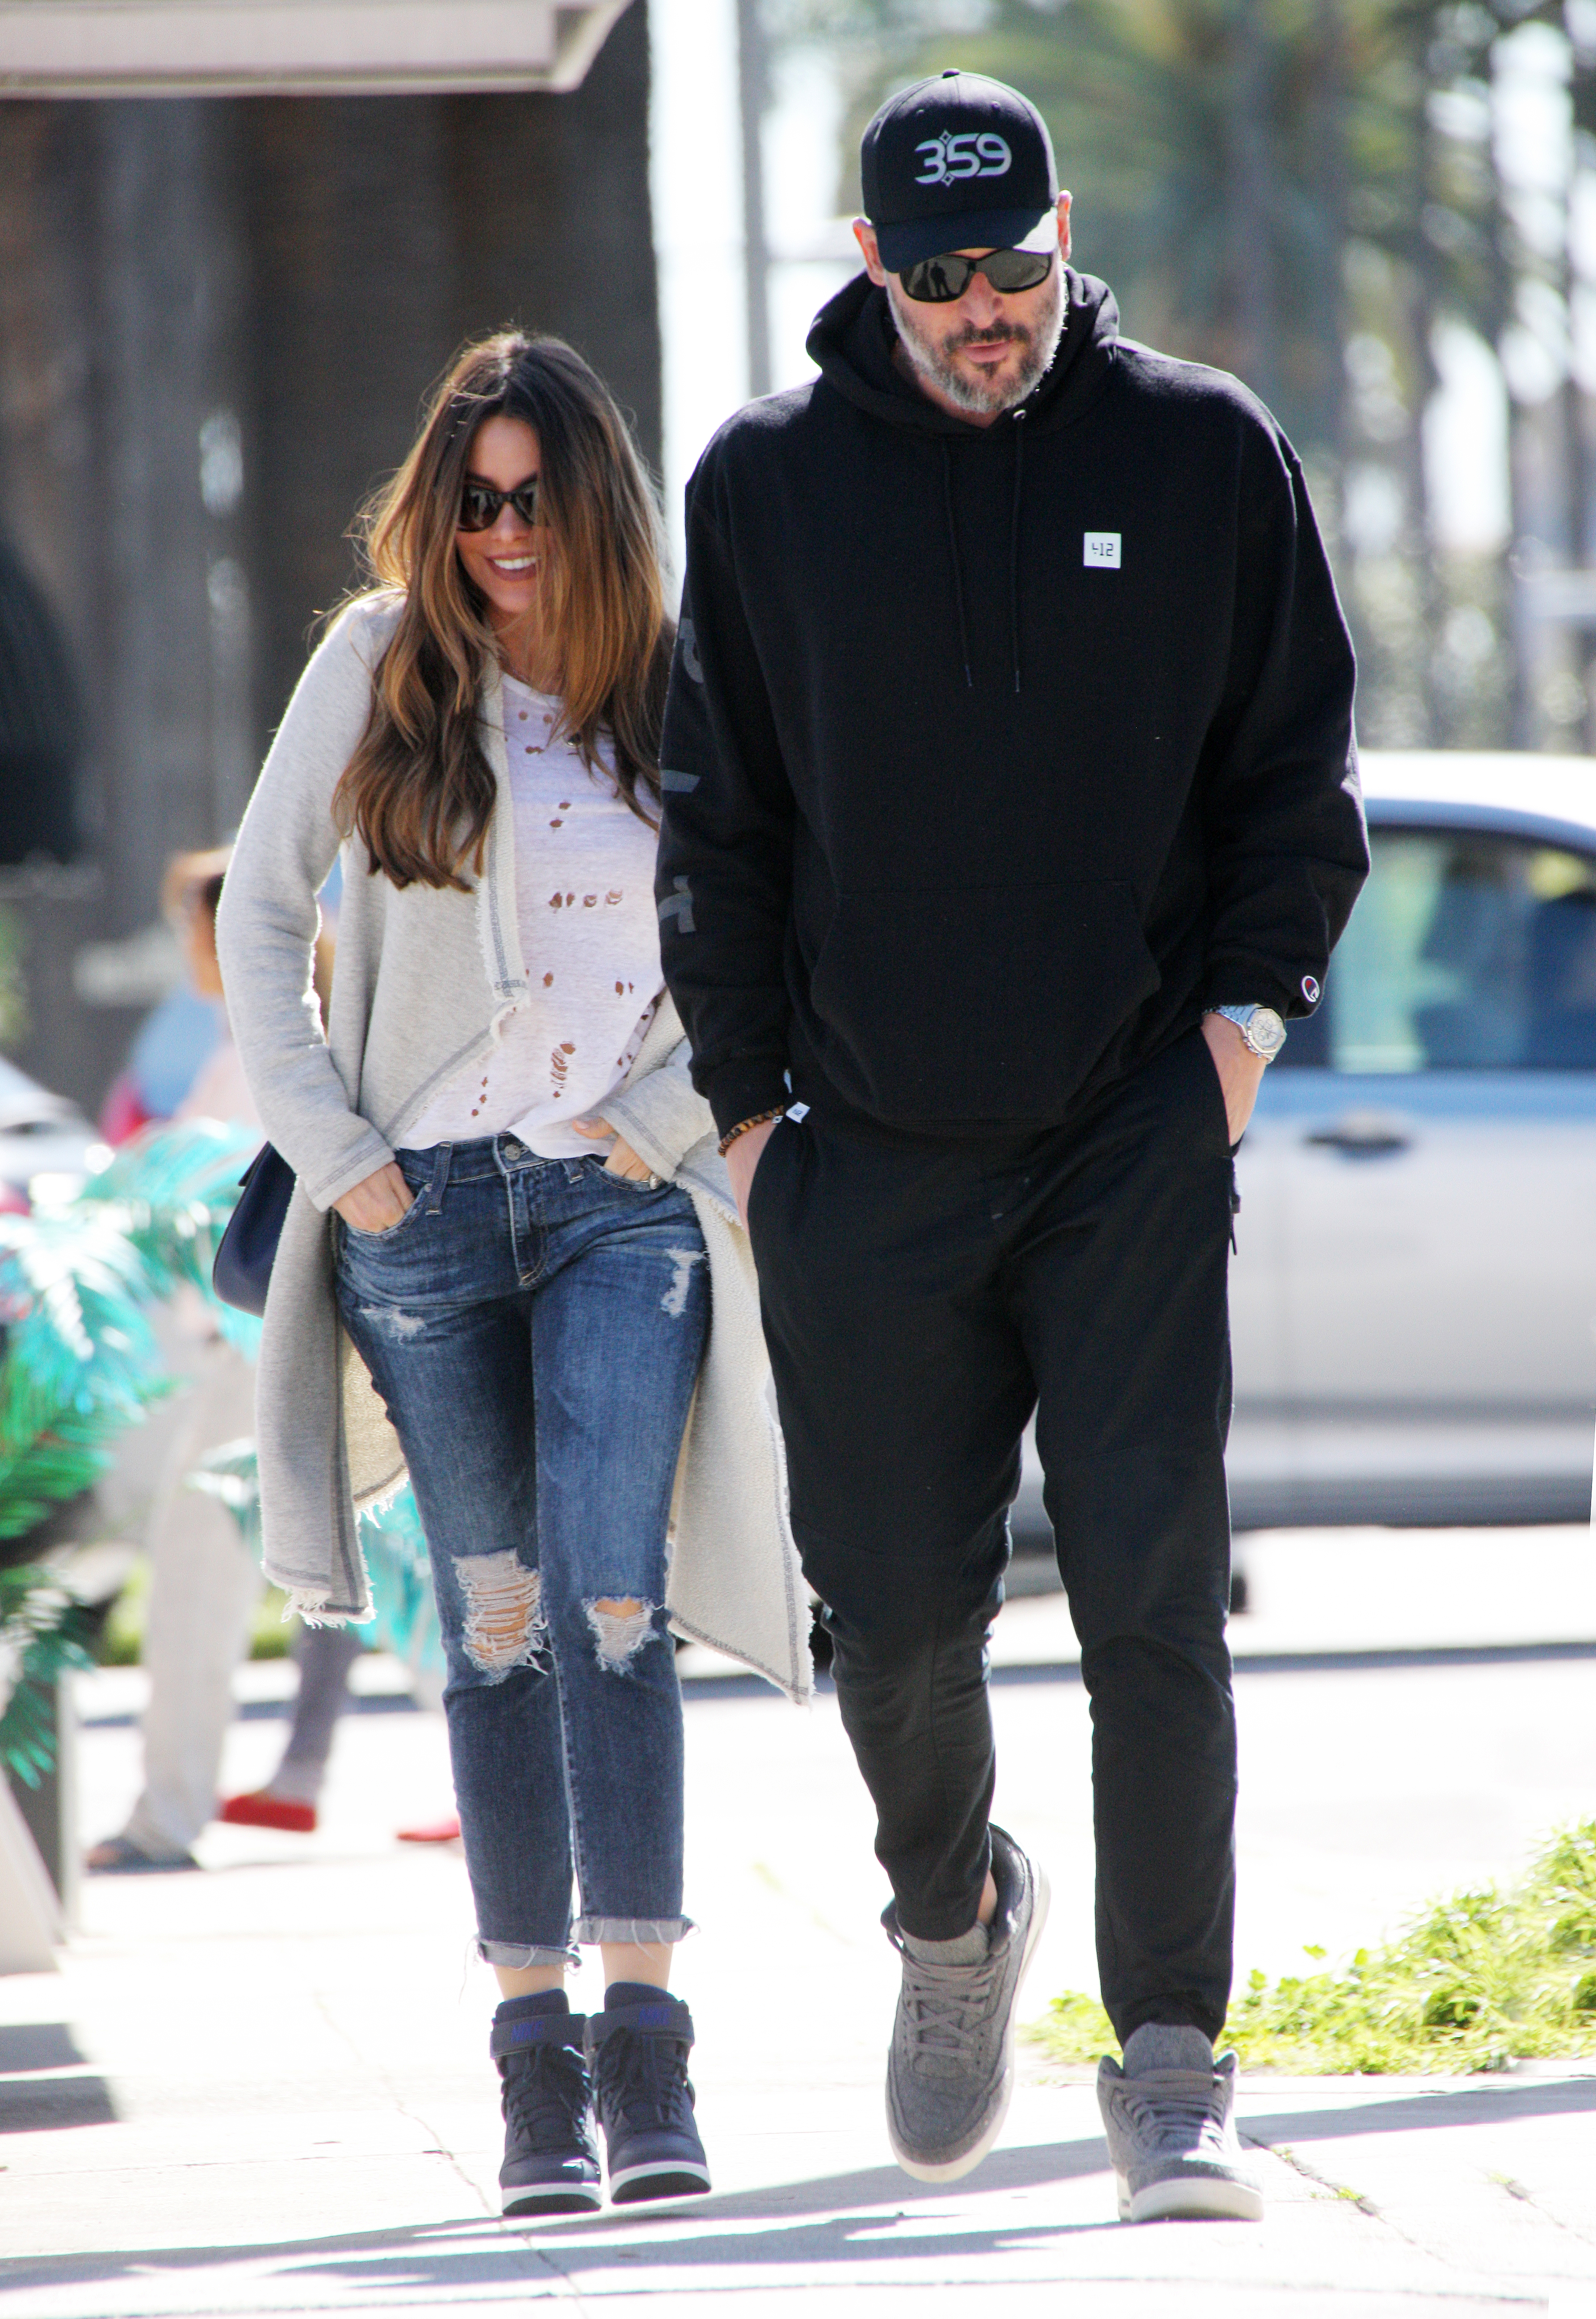 EXCLUSIVE Sofia Vergara Dons Double Distressed Outfit For Lunch Date With Hubby Joe Manganiello